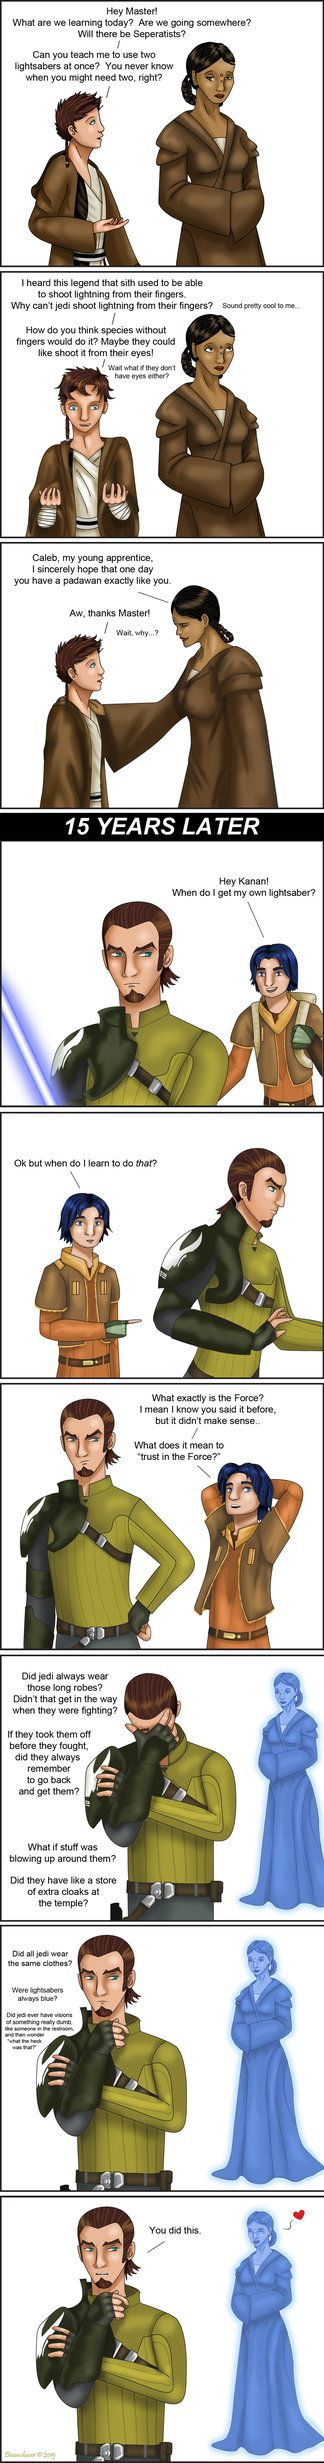 SWR: The Mother's Curse by Dawnchaser~EVERY JEDI MASTER SAYS THIS TO THEIR PADAWAN AT SOME POINT